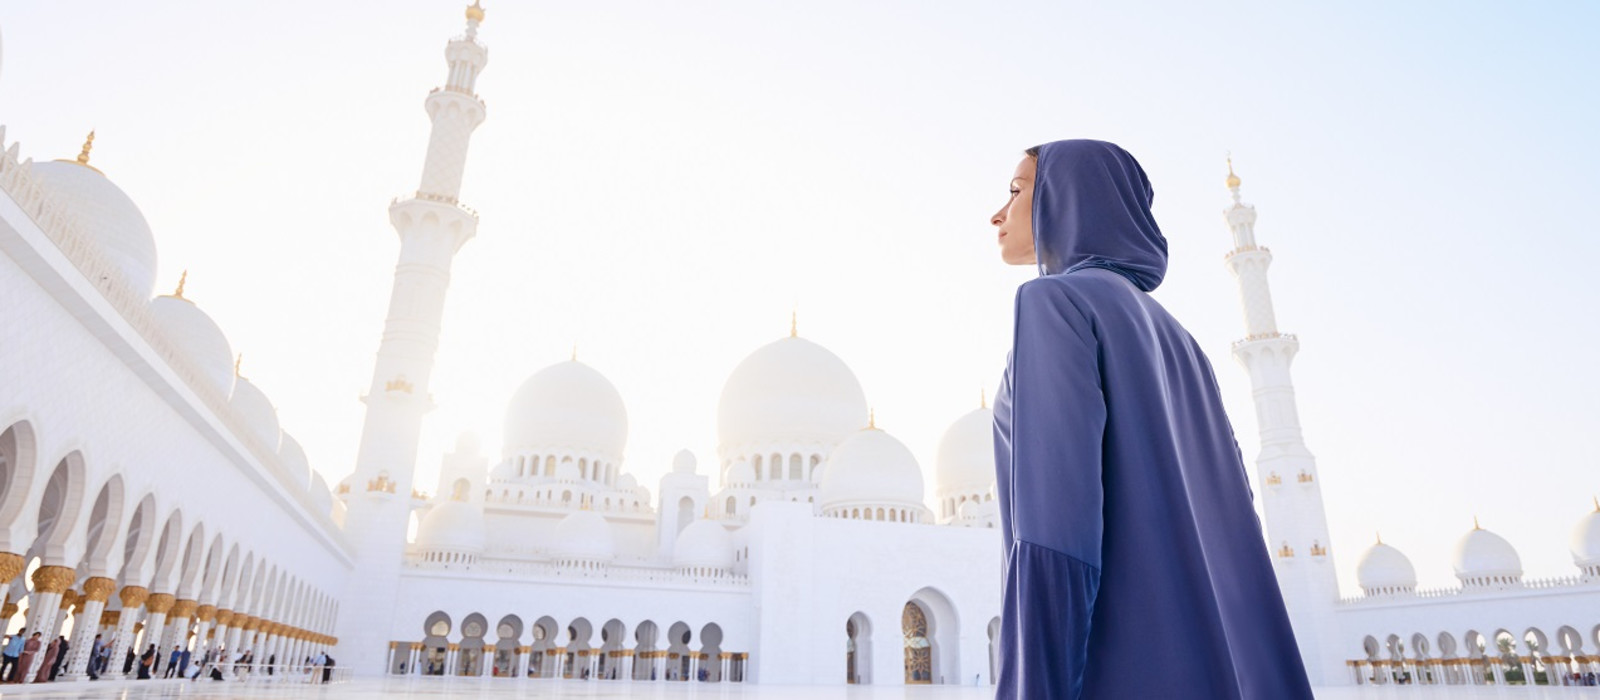 Things to do in Dubai and Abu Dhabi - Sheikh Zayed Grand mosque